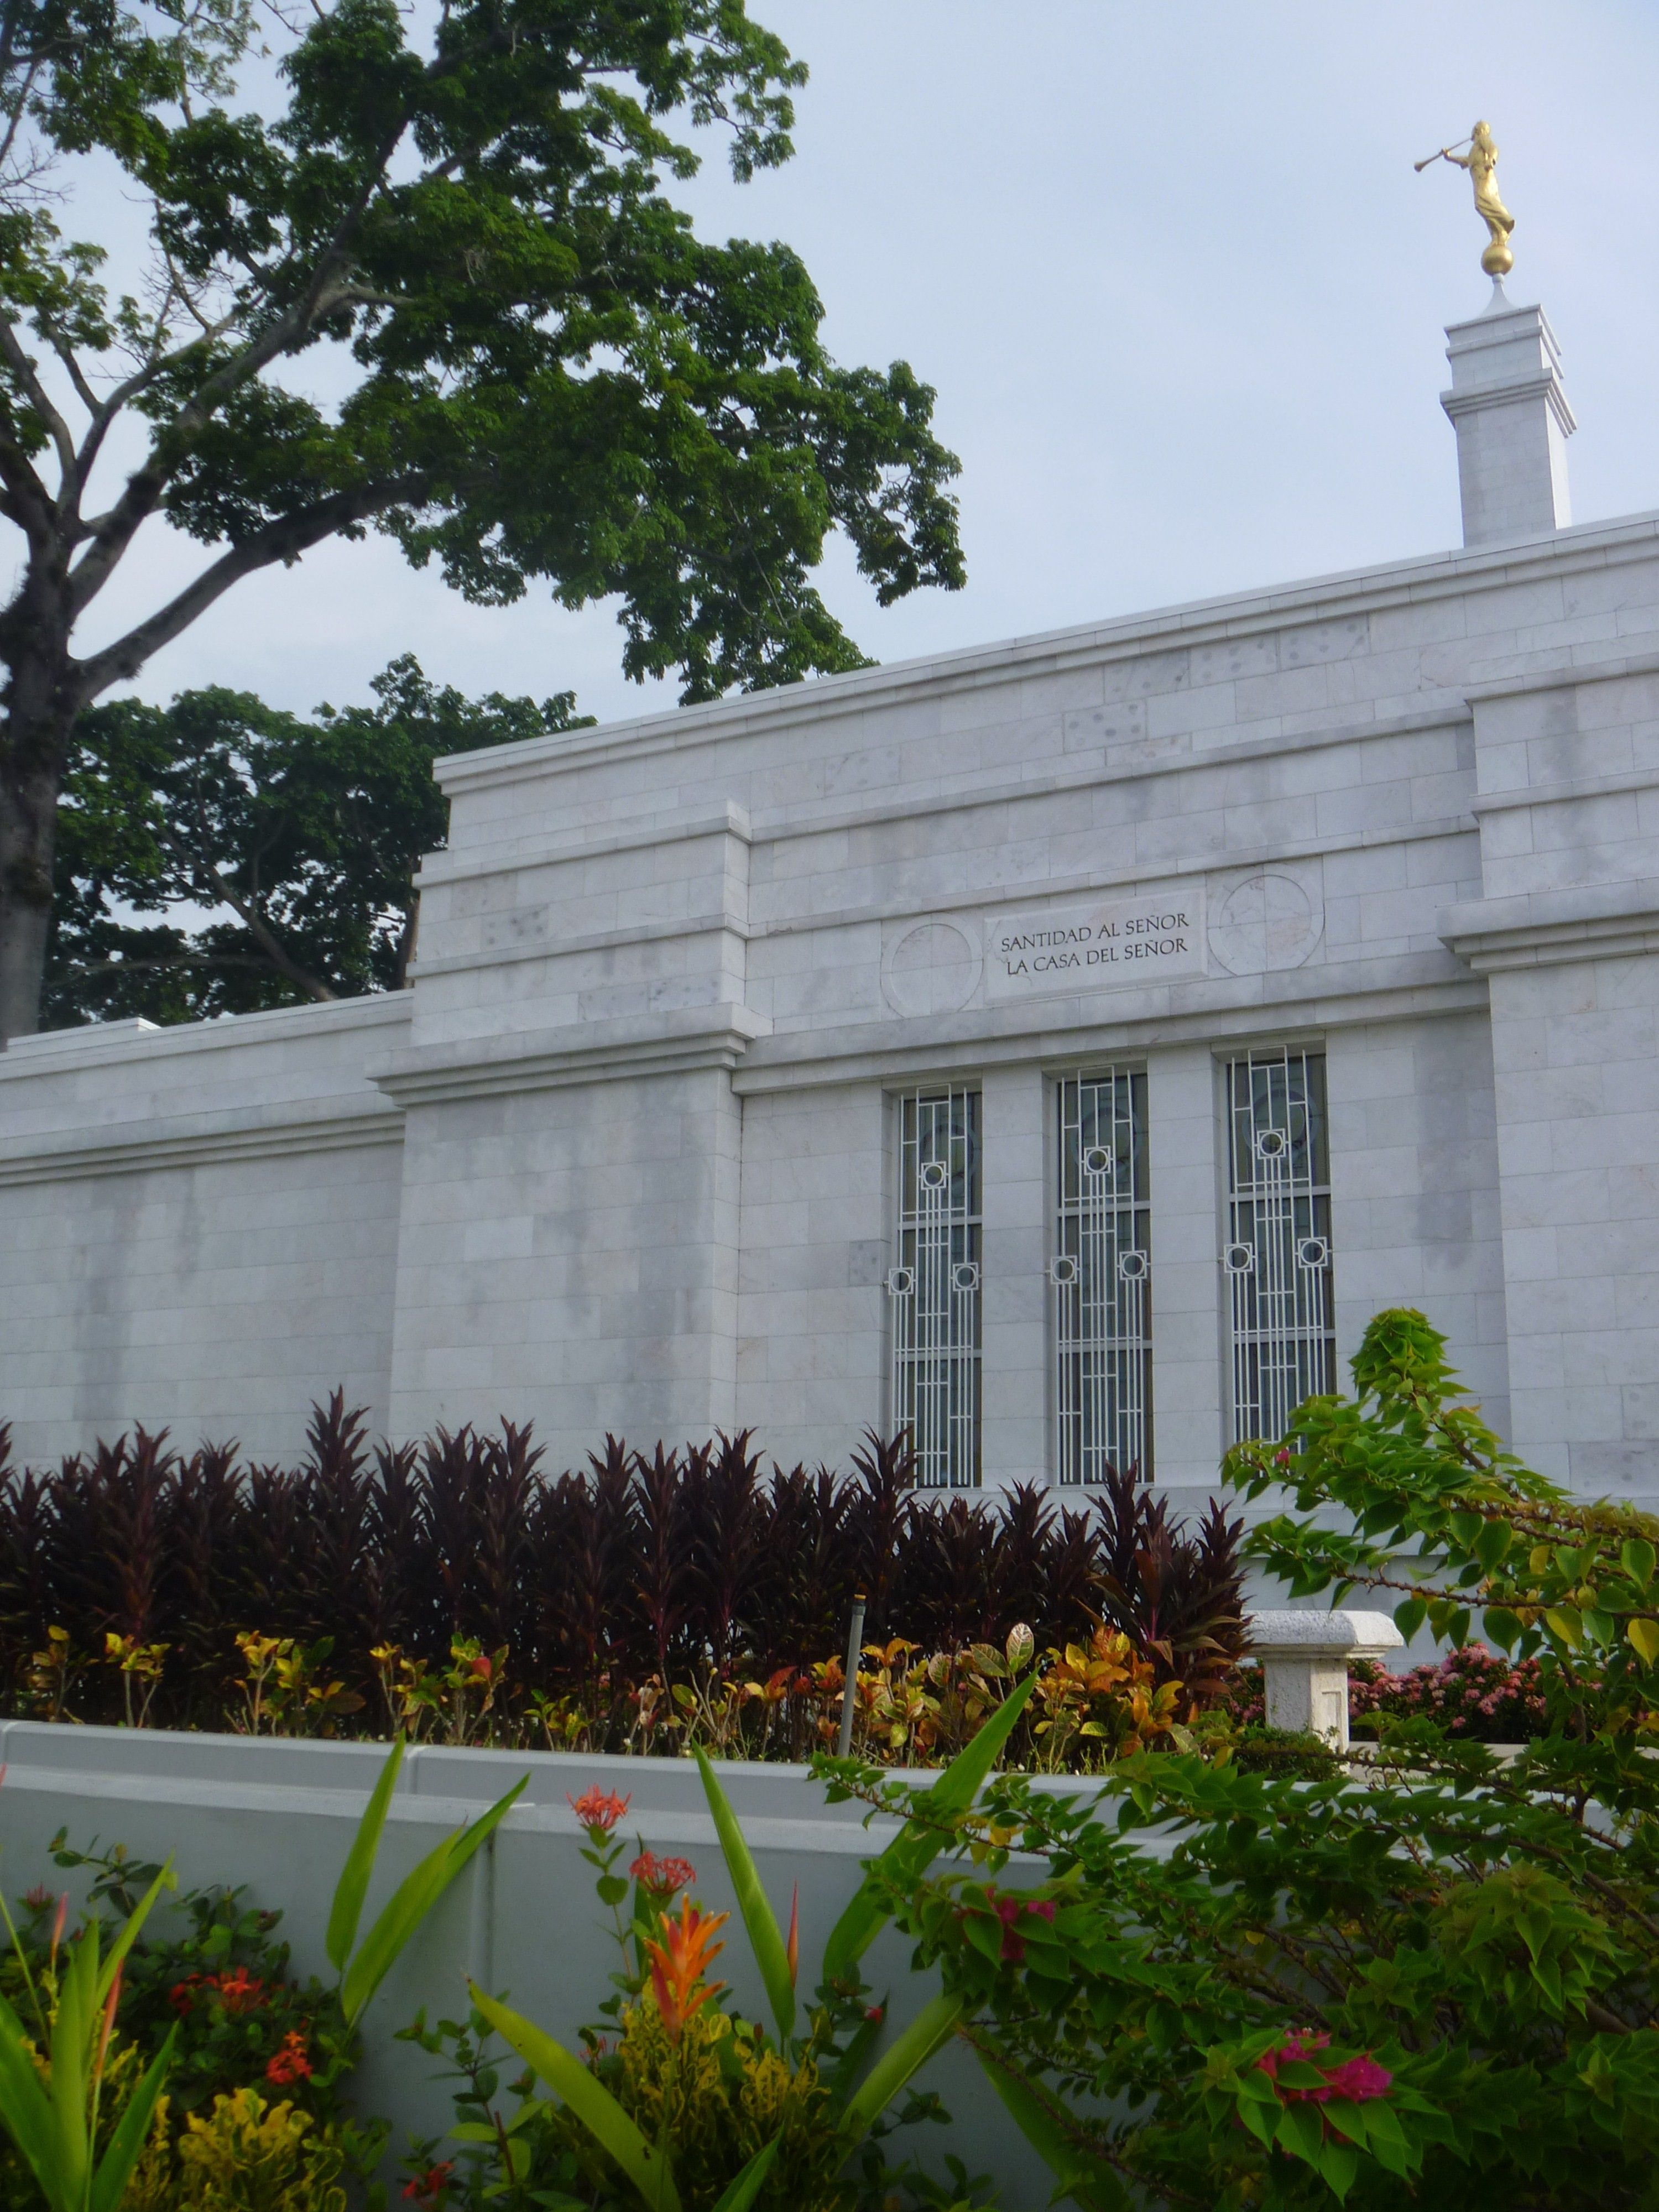 The Villahermosa Mexico Temple, with the windows, spire, and scenery.